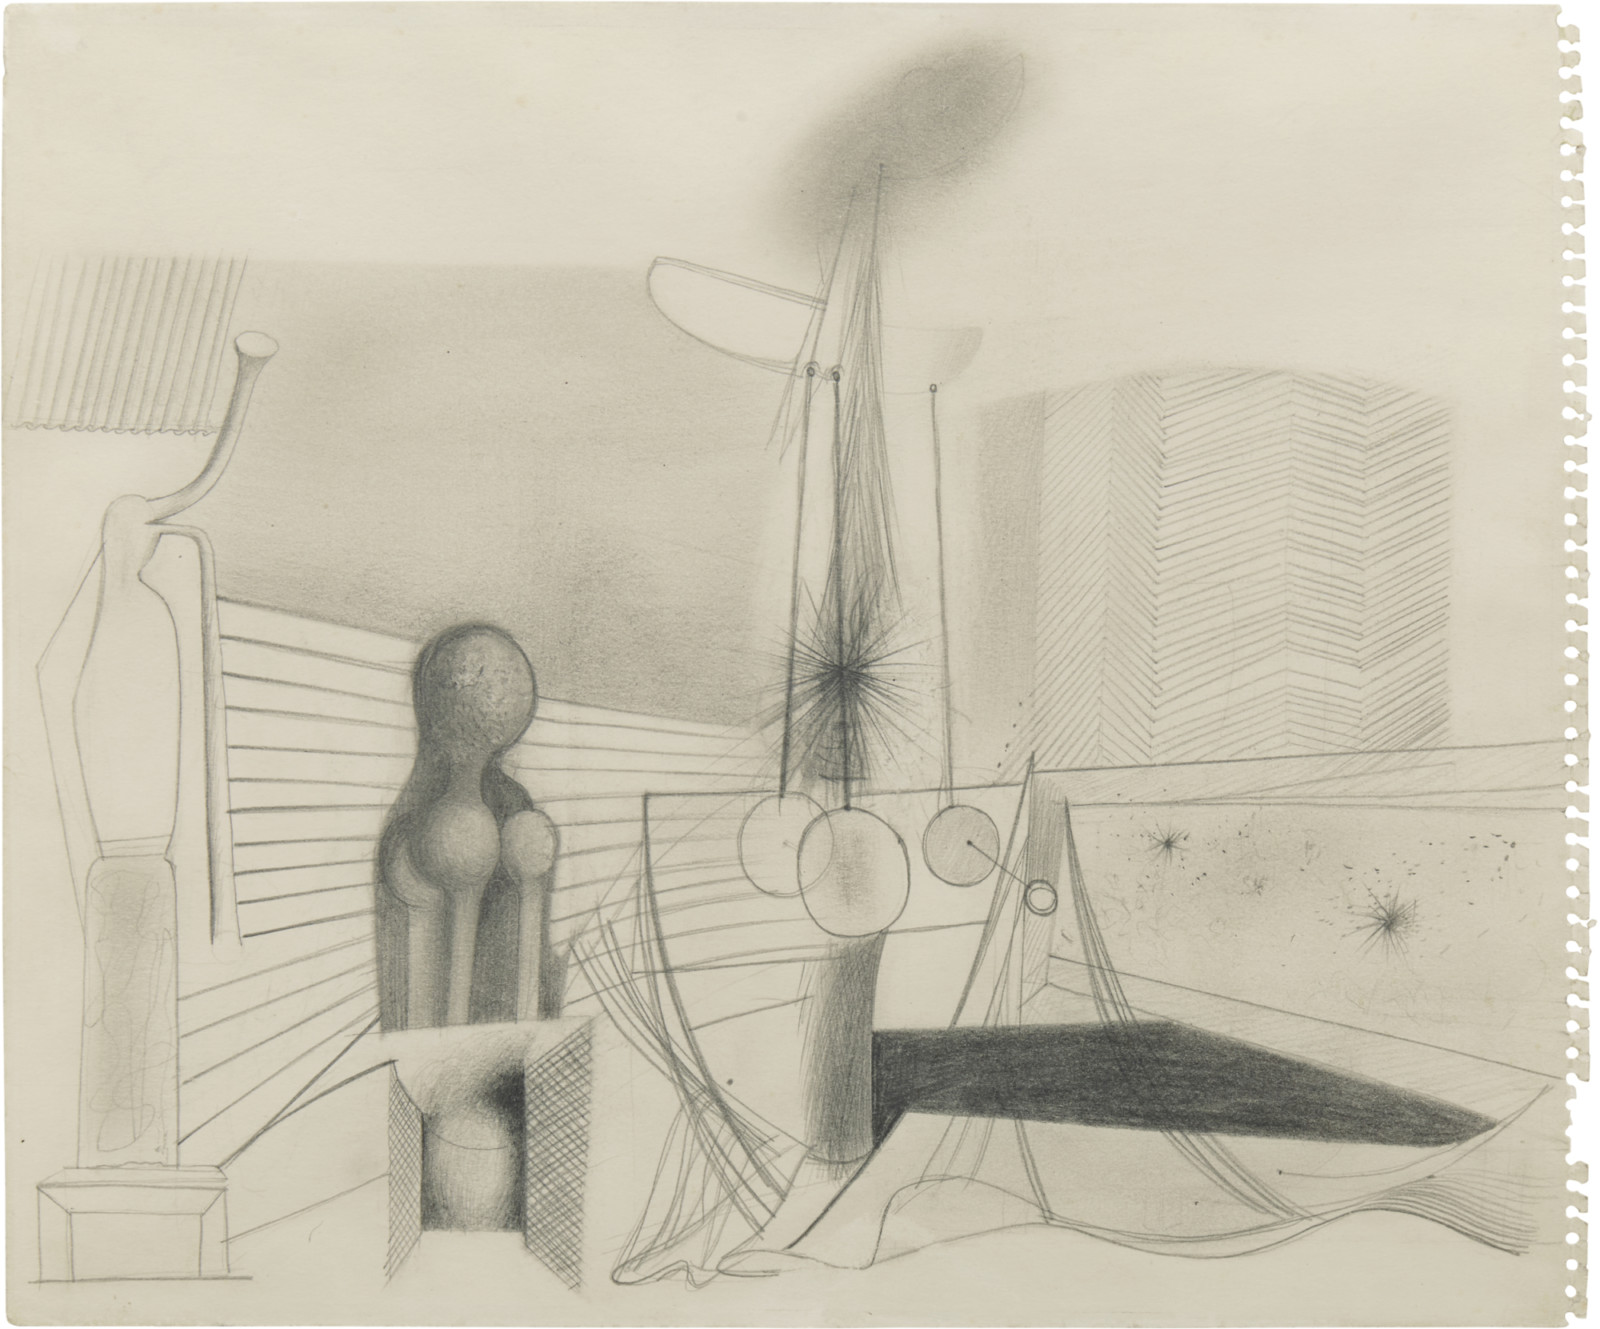 Drawing, dated 1937